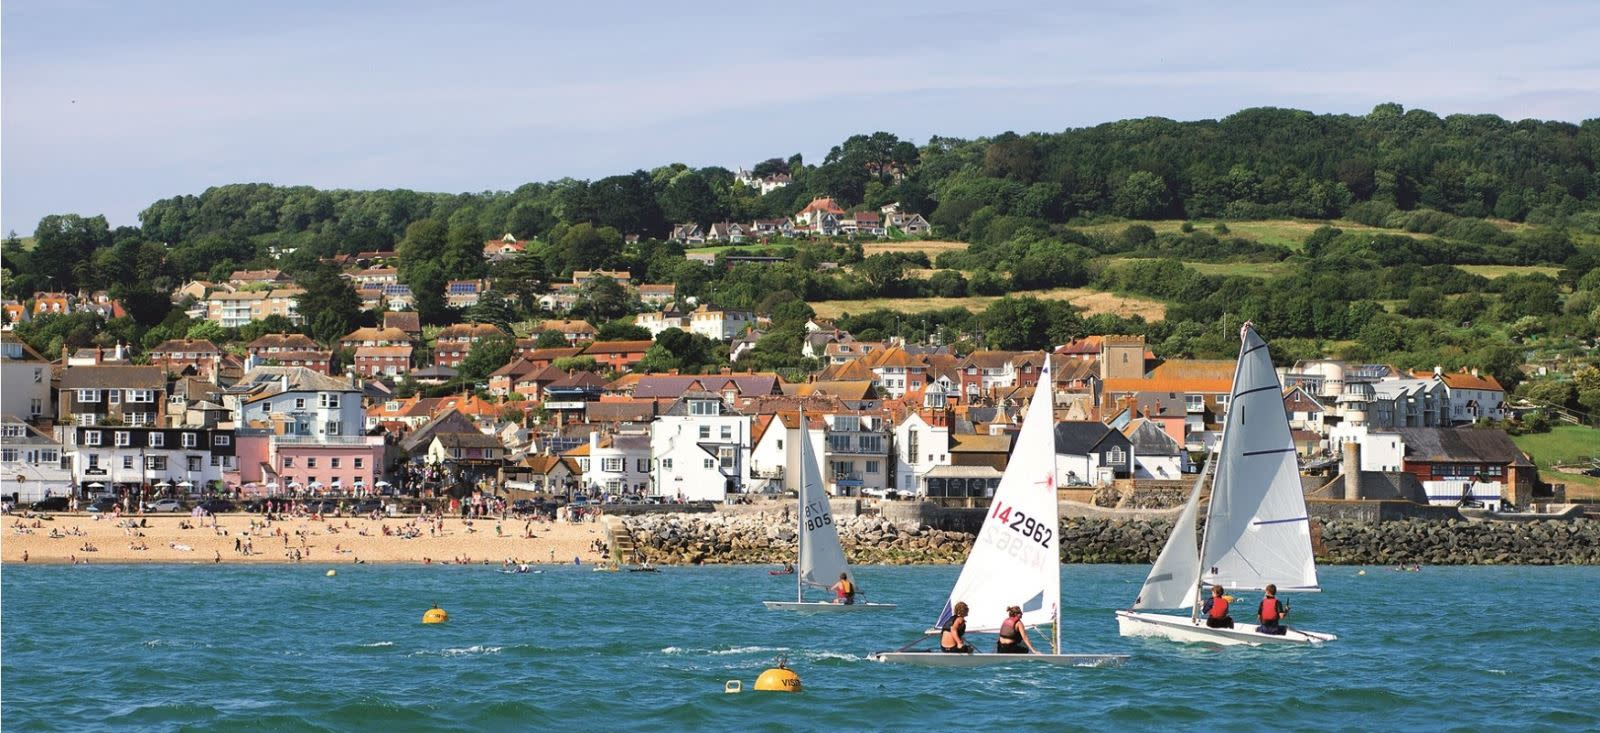 A view of Lyme Regis from the sea